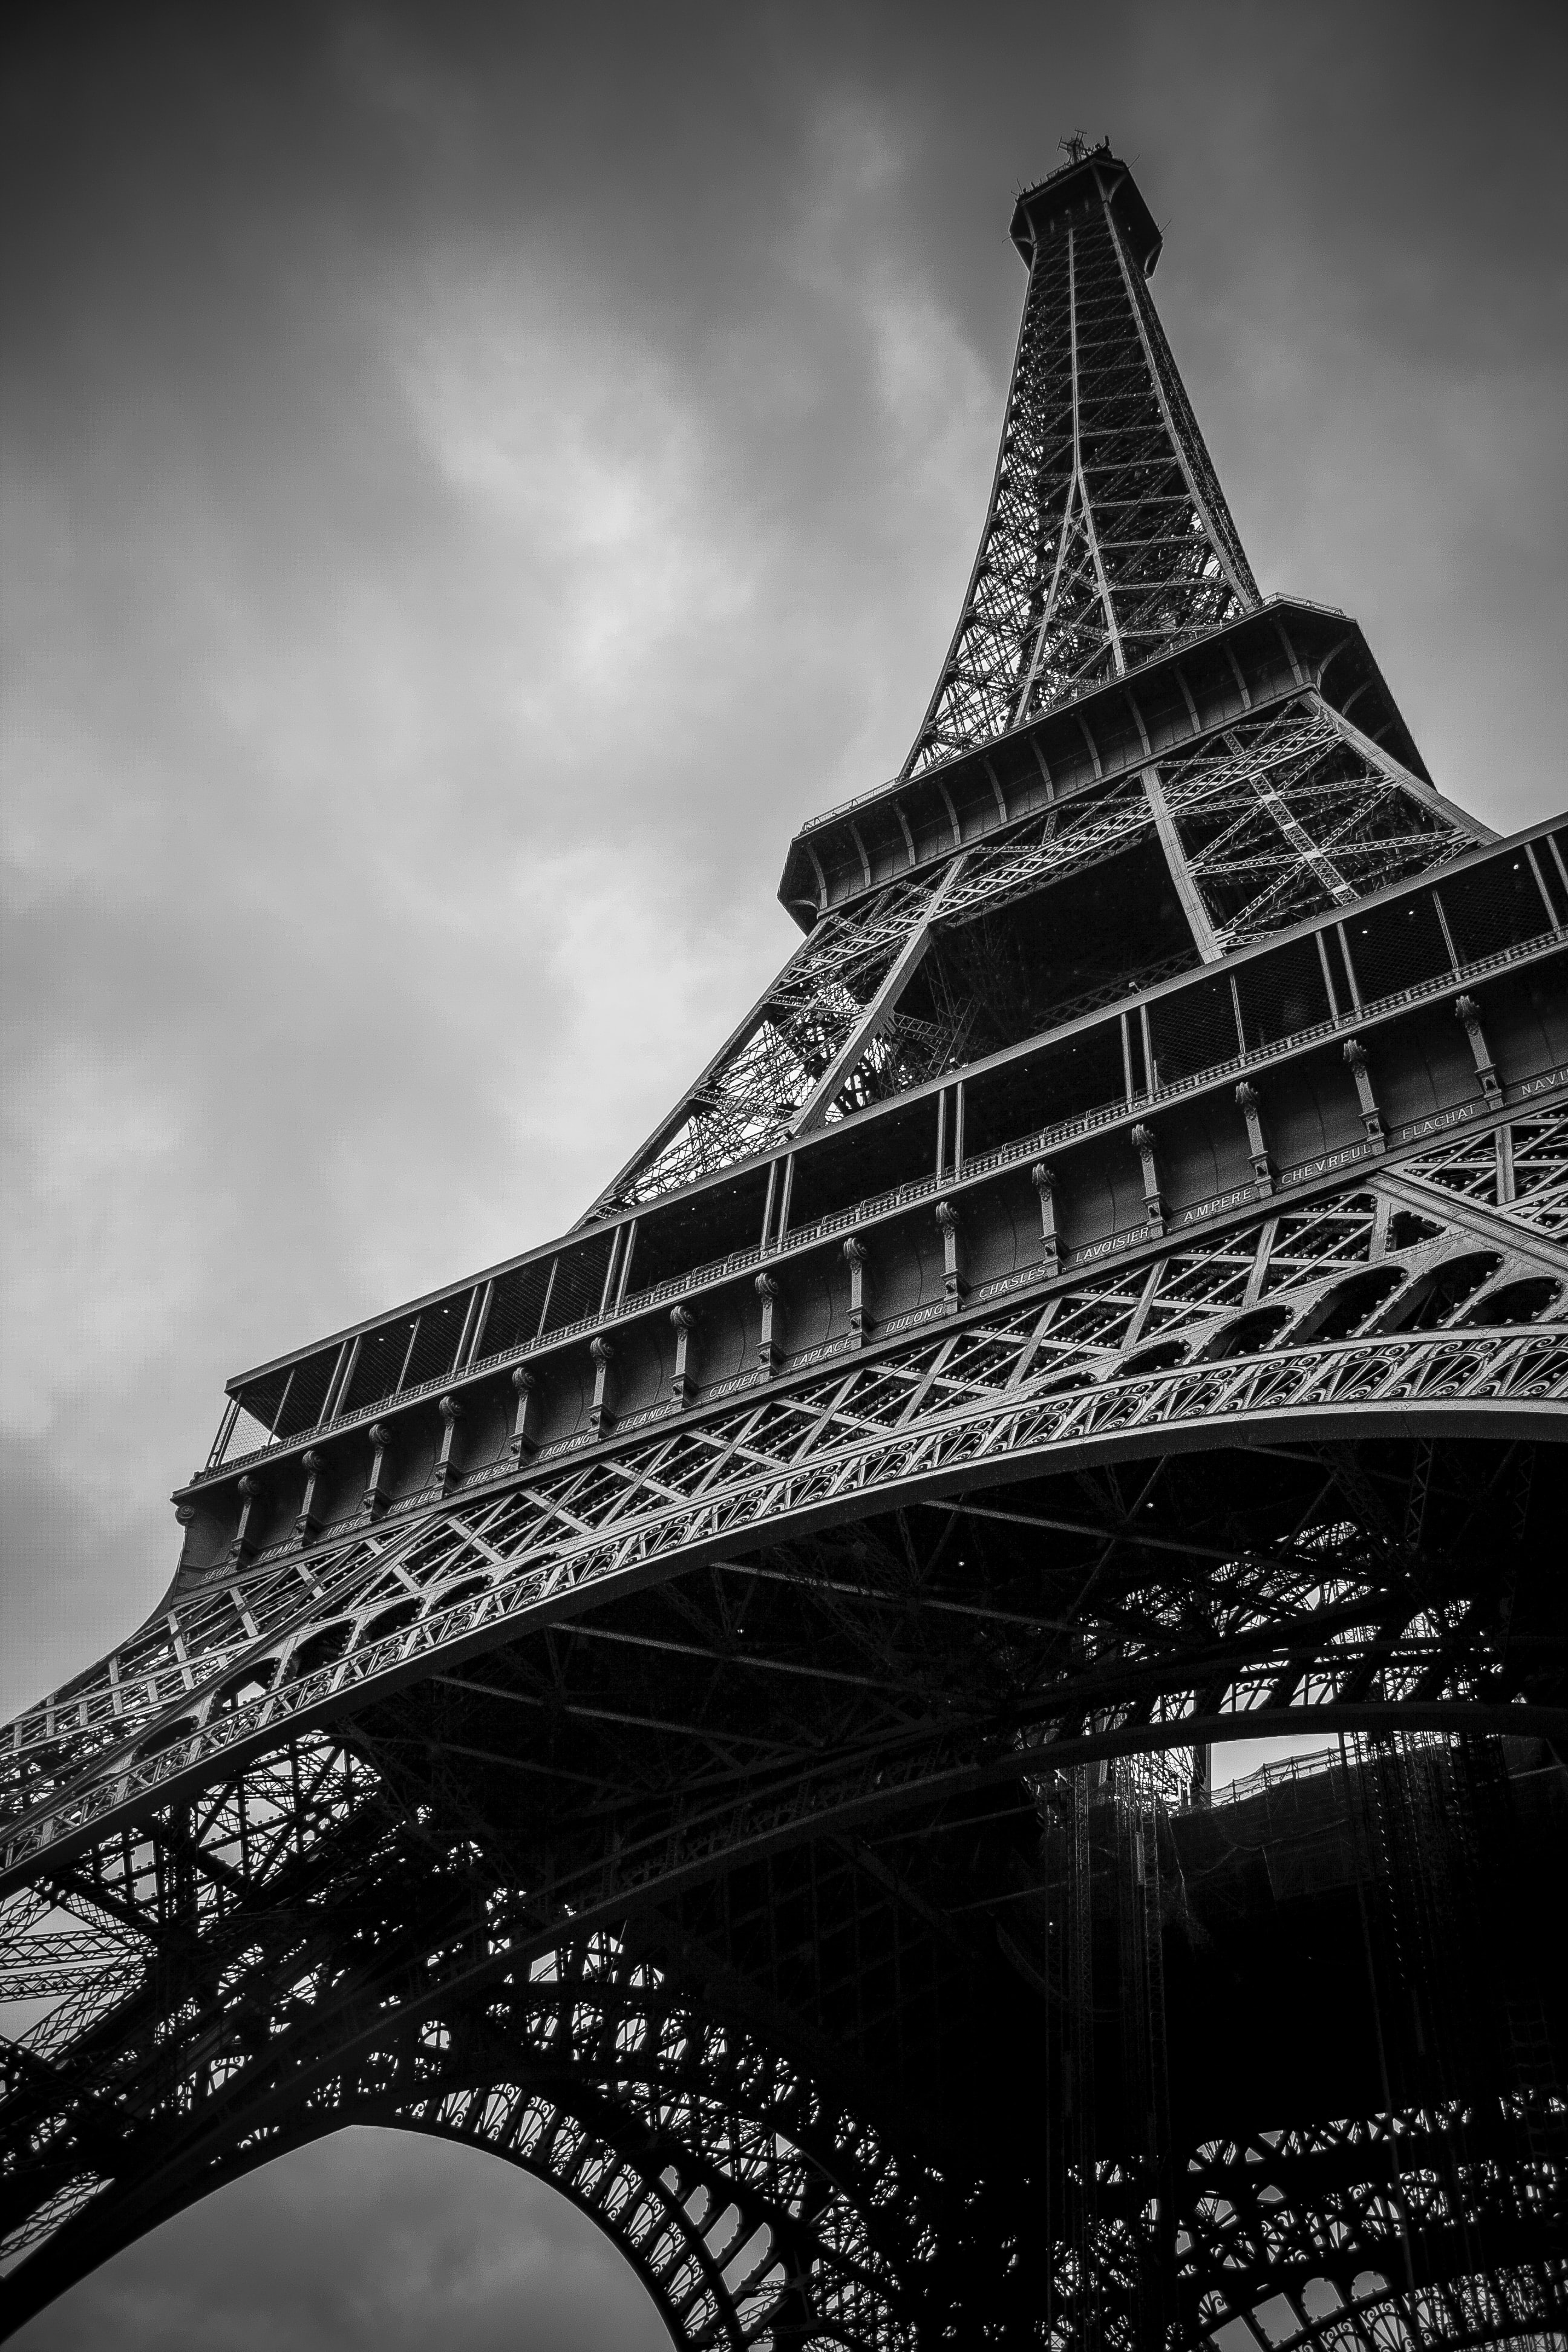 A low-angle shot of the Eiffel Tower in Paris on a cloudy day